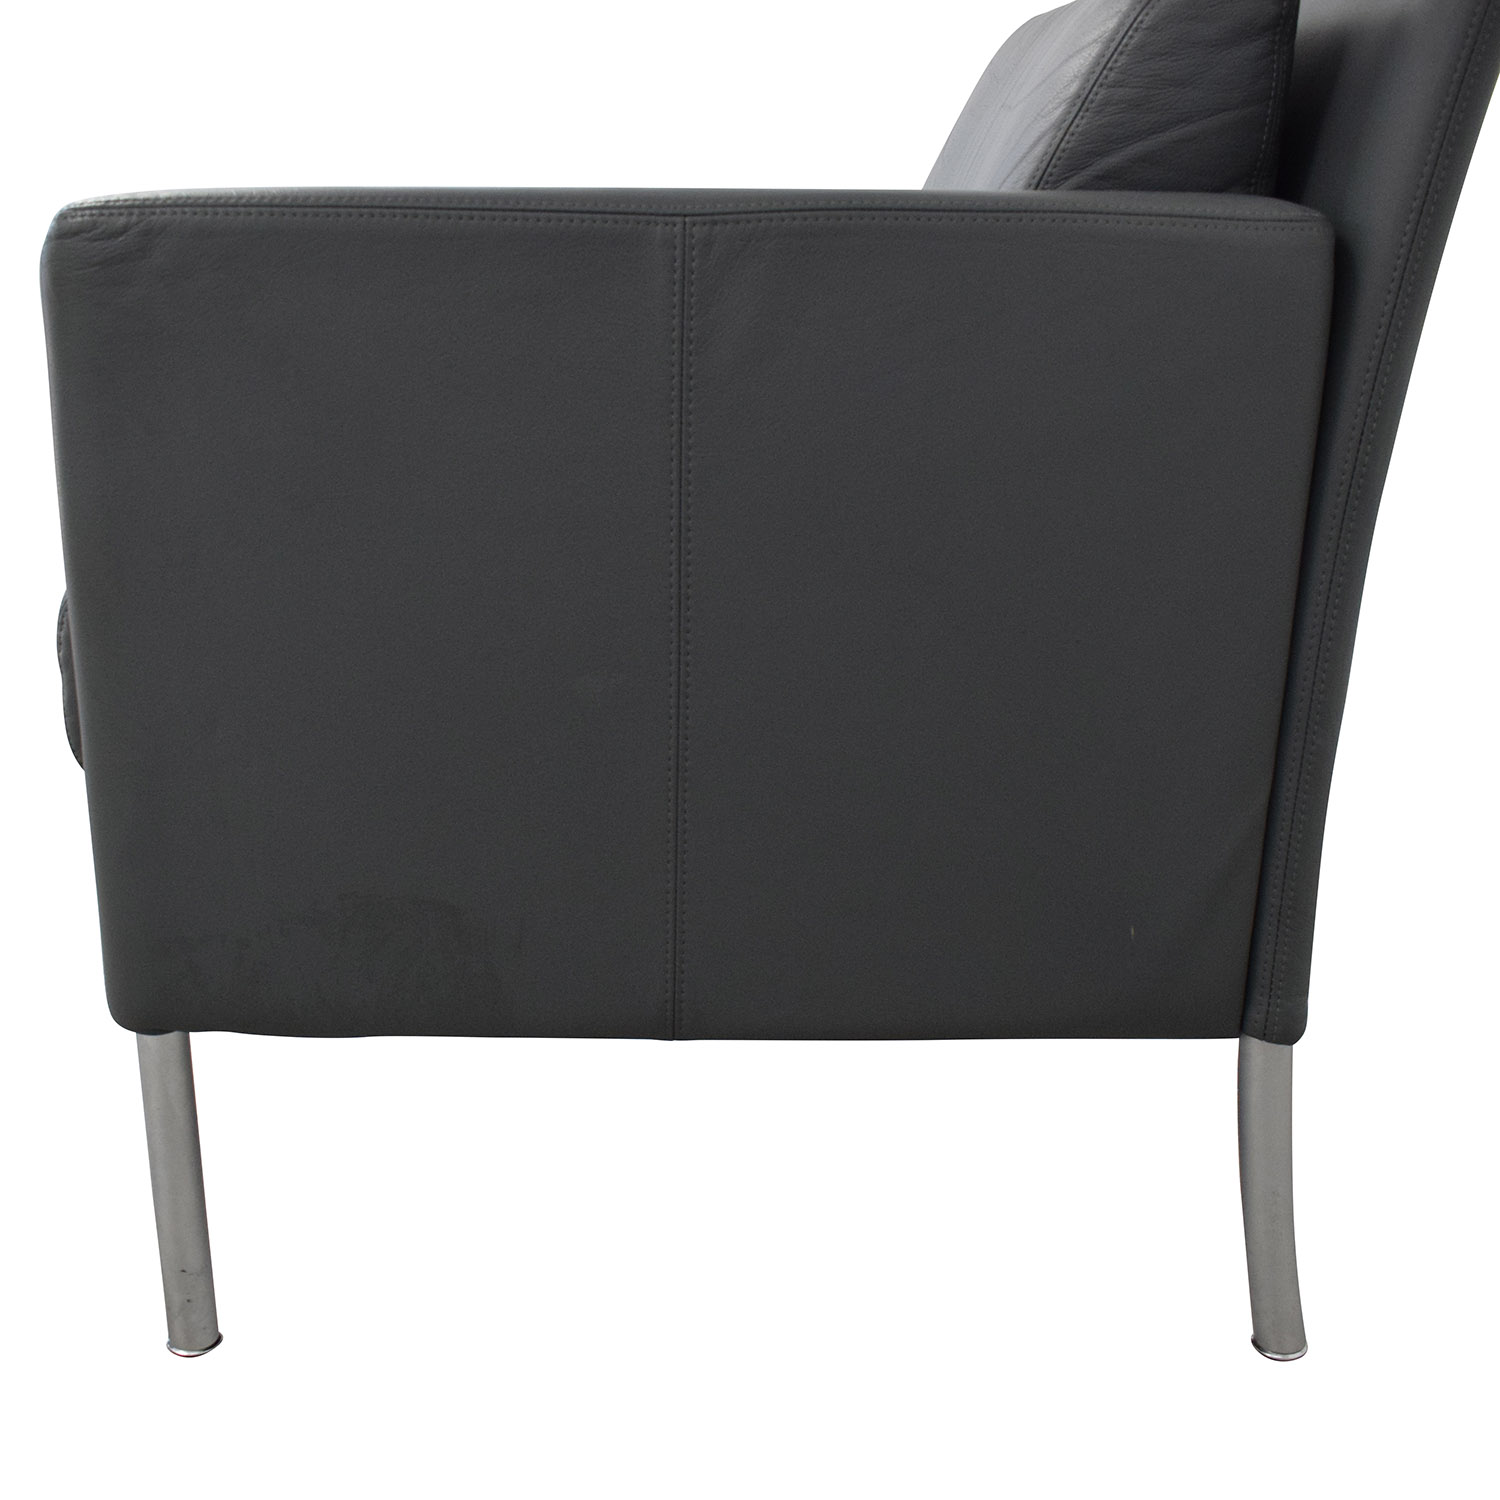 Steelcase Steelcase Coalesse Lounge Chair on sale